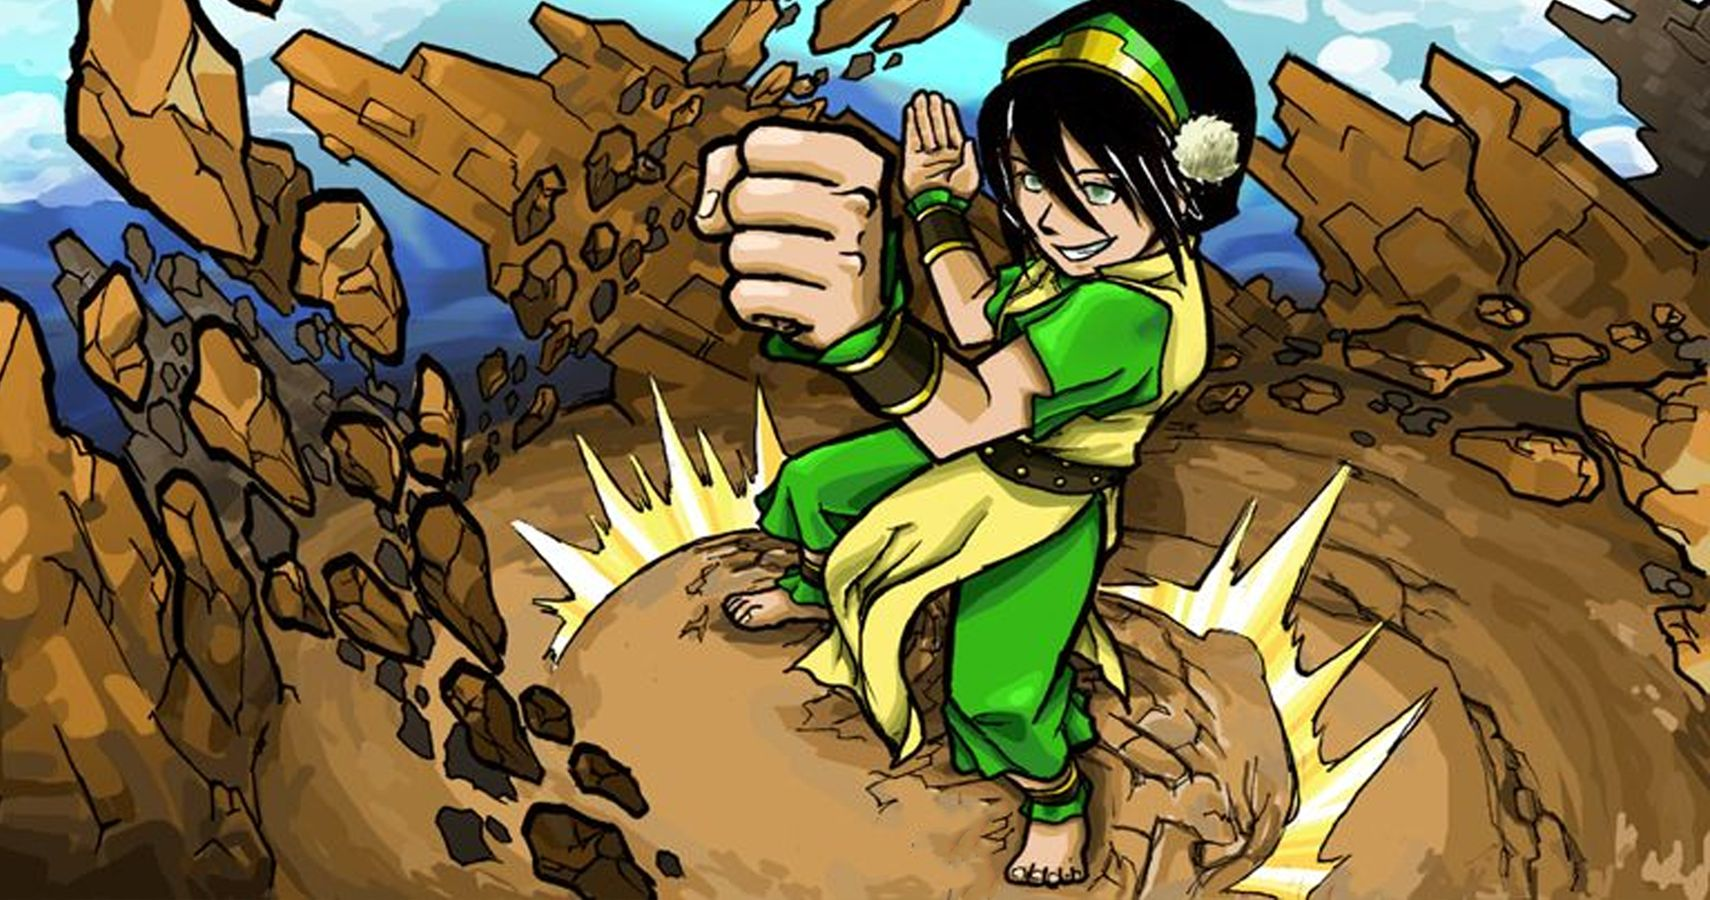 25 Weird Things About Toph's Anatomy In Avatar The Last Airbender